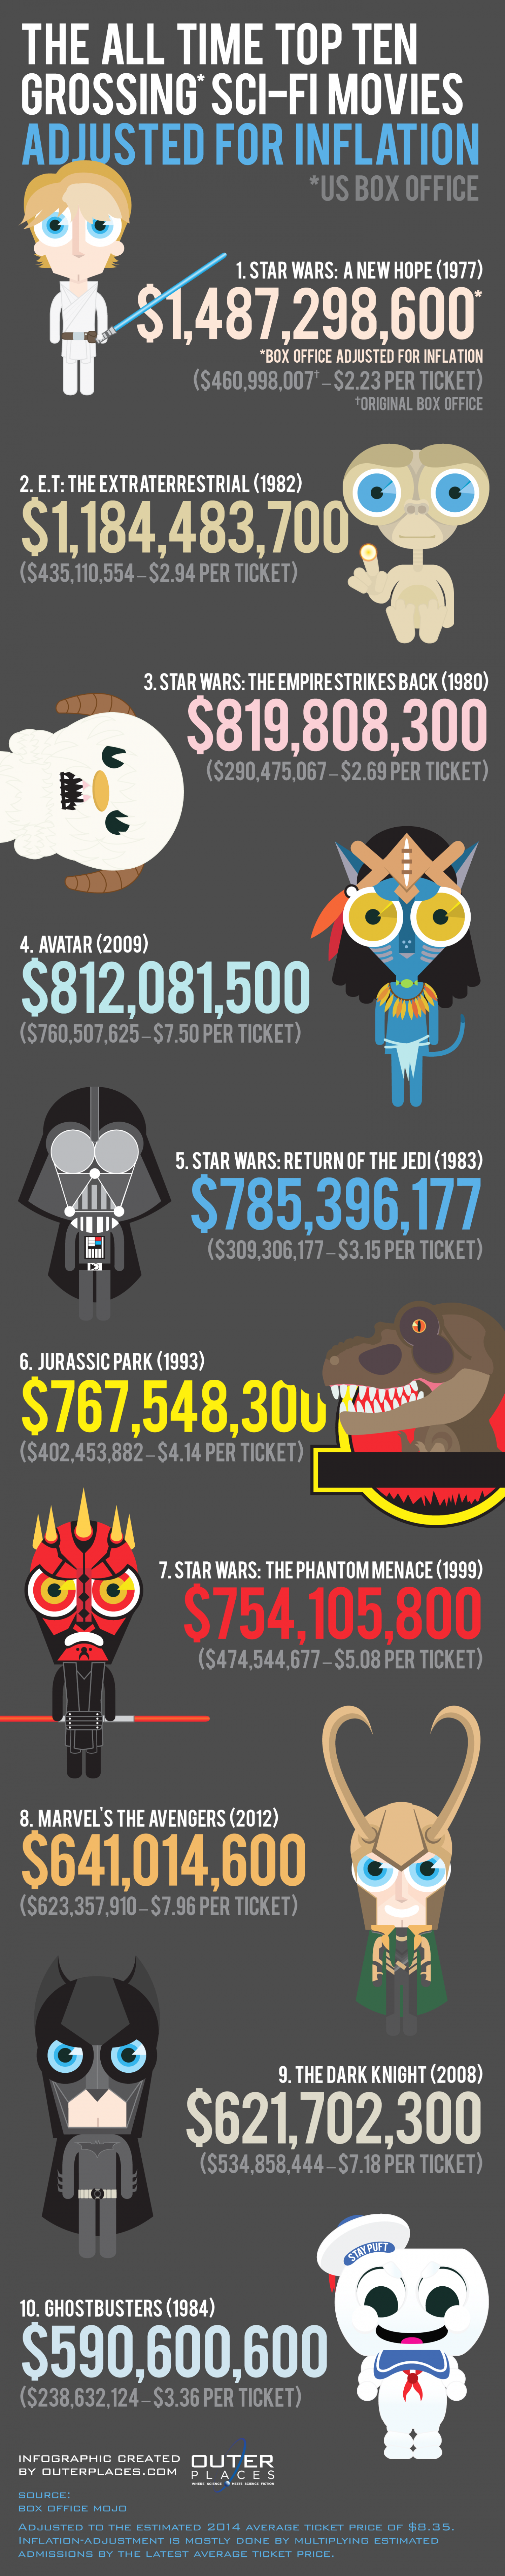 Infographic - Top Ten Grossing Sci-Fi Movies